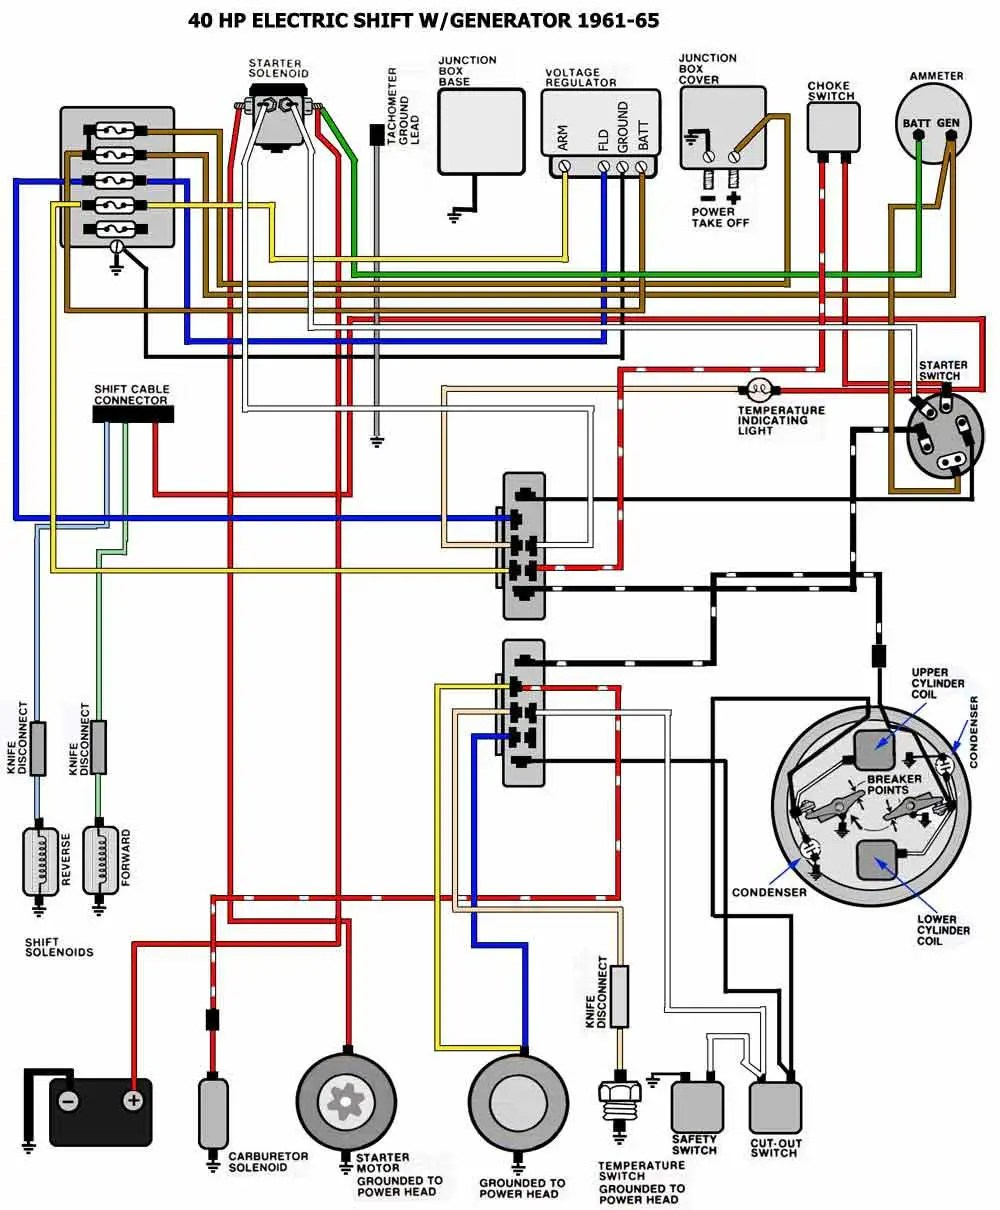 hight resolution of wiring diagram moreover johnson outboard ignition switch wiring brp evinrude ignition switch wiring diagram